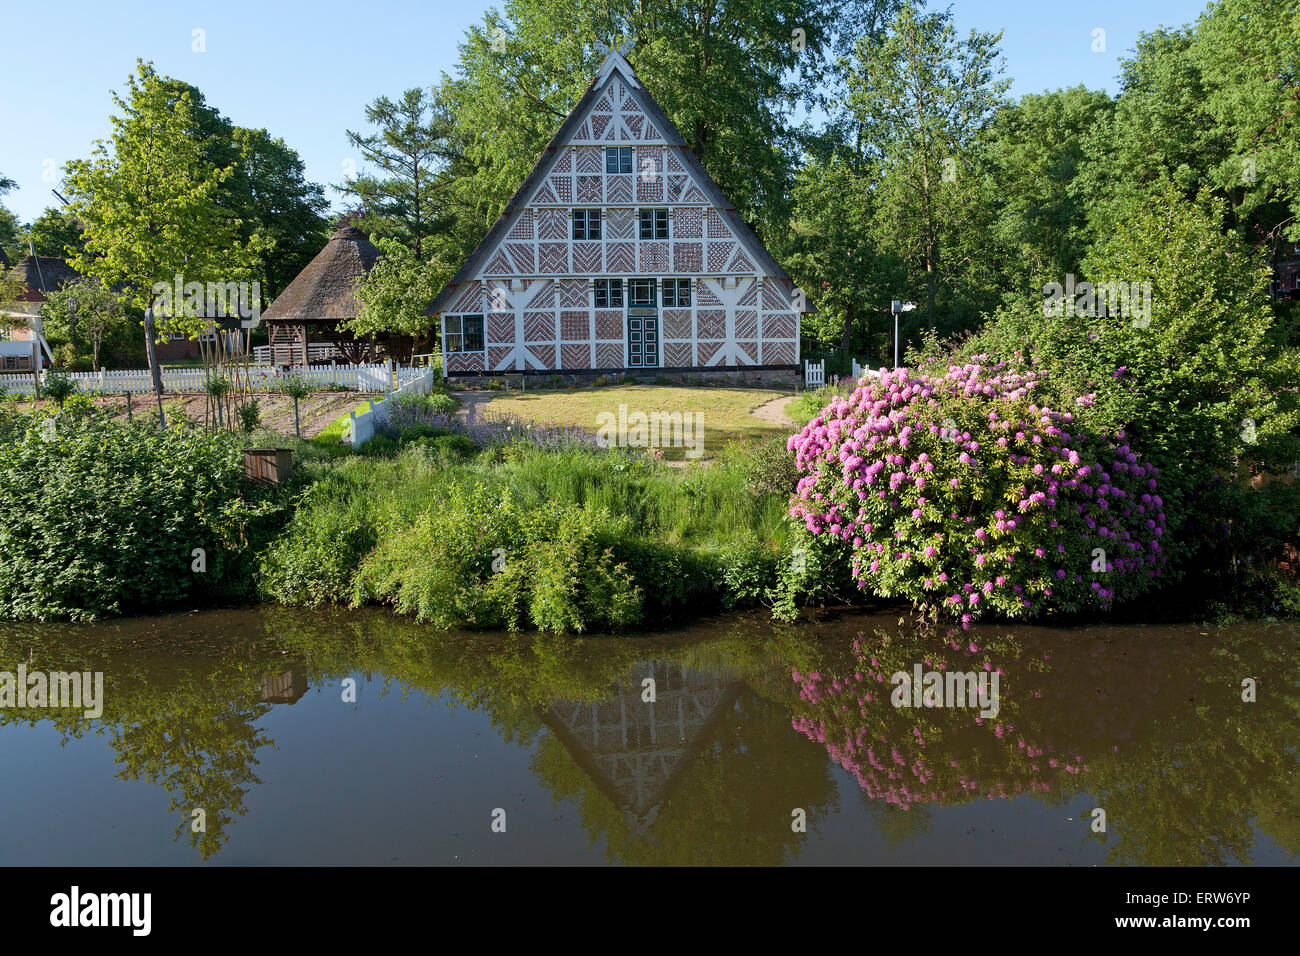 frame house, open-air museum, Stade, Lower Saxony, Germany - Stock Image